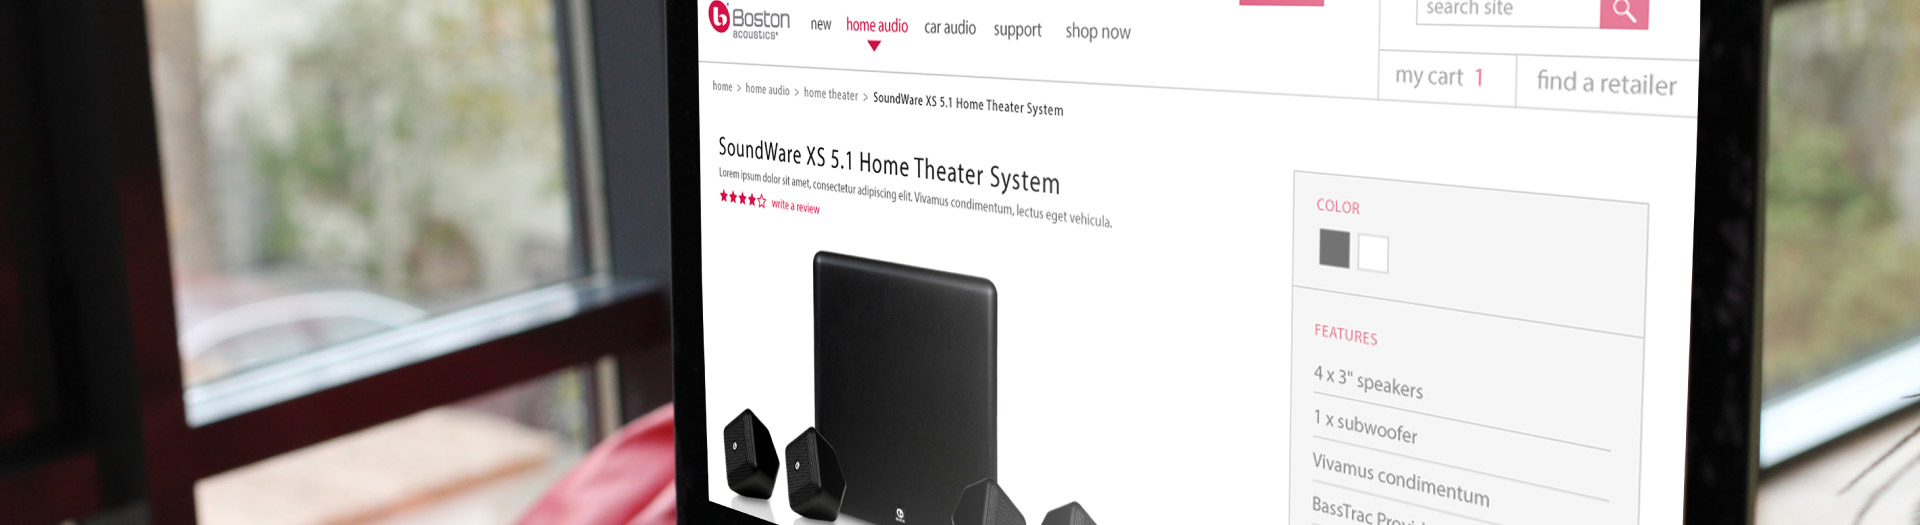 boston-acoustics-Home Theater XS5.1